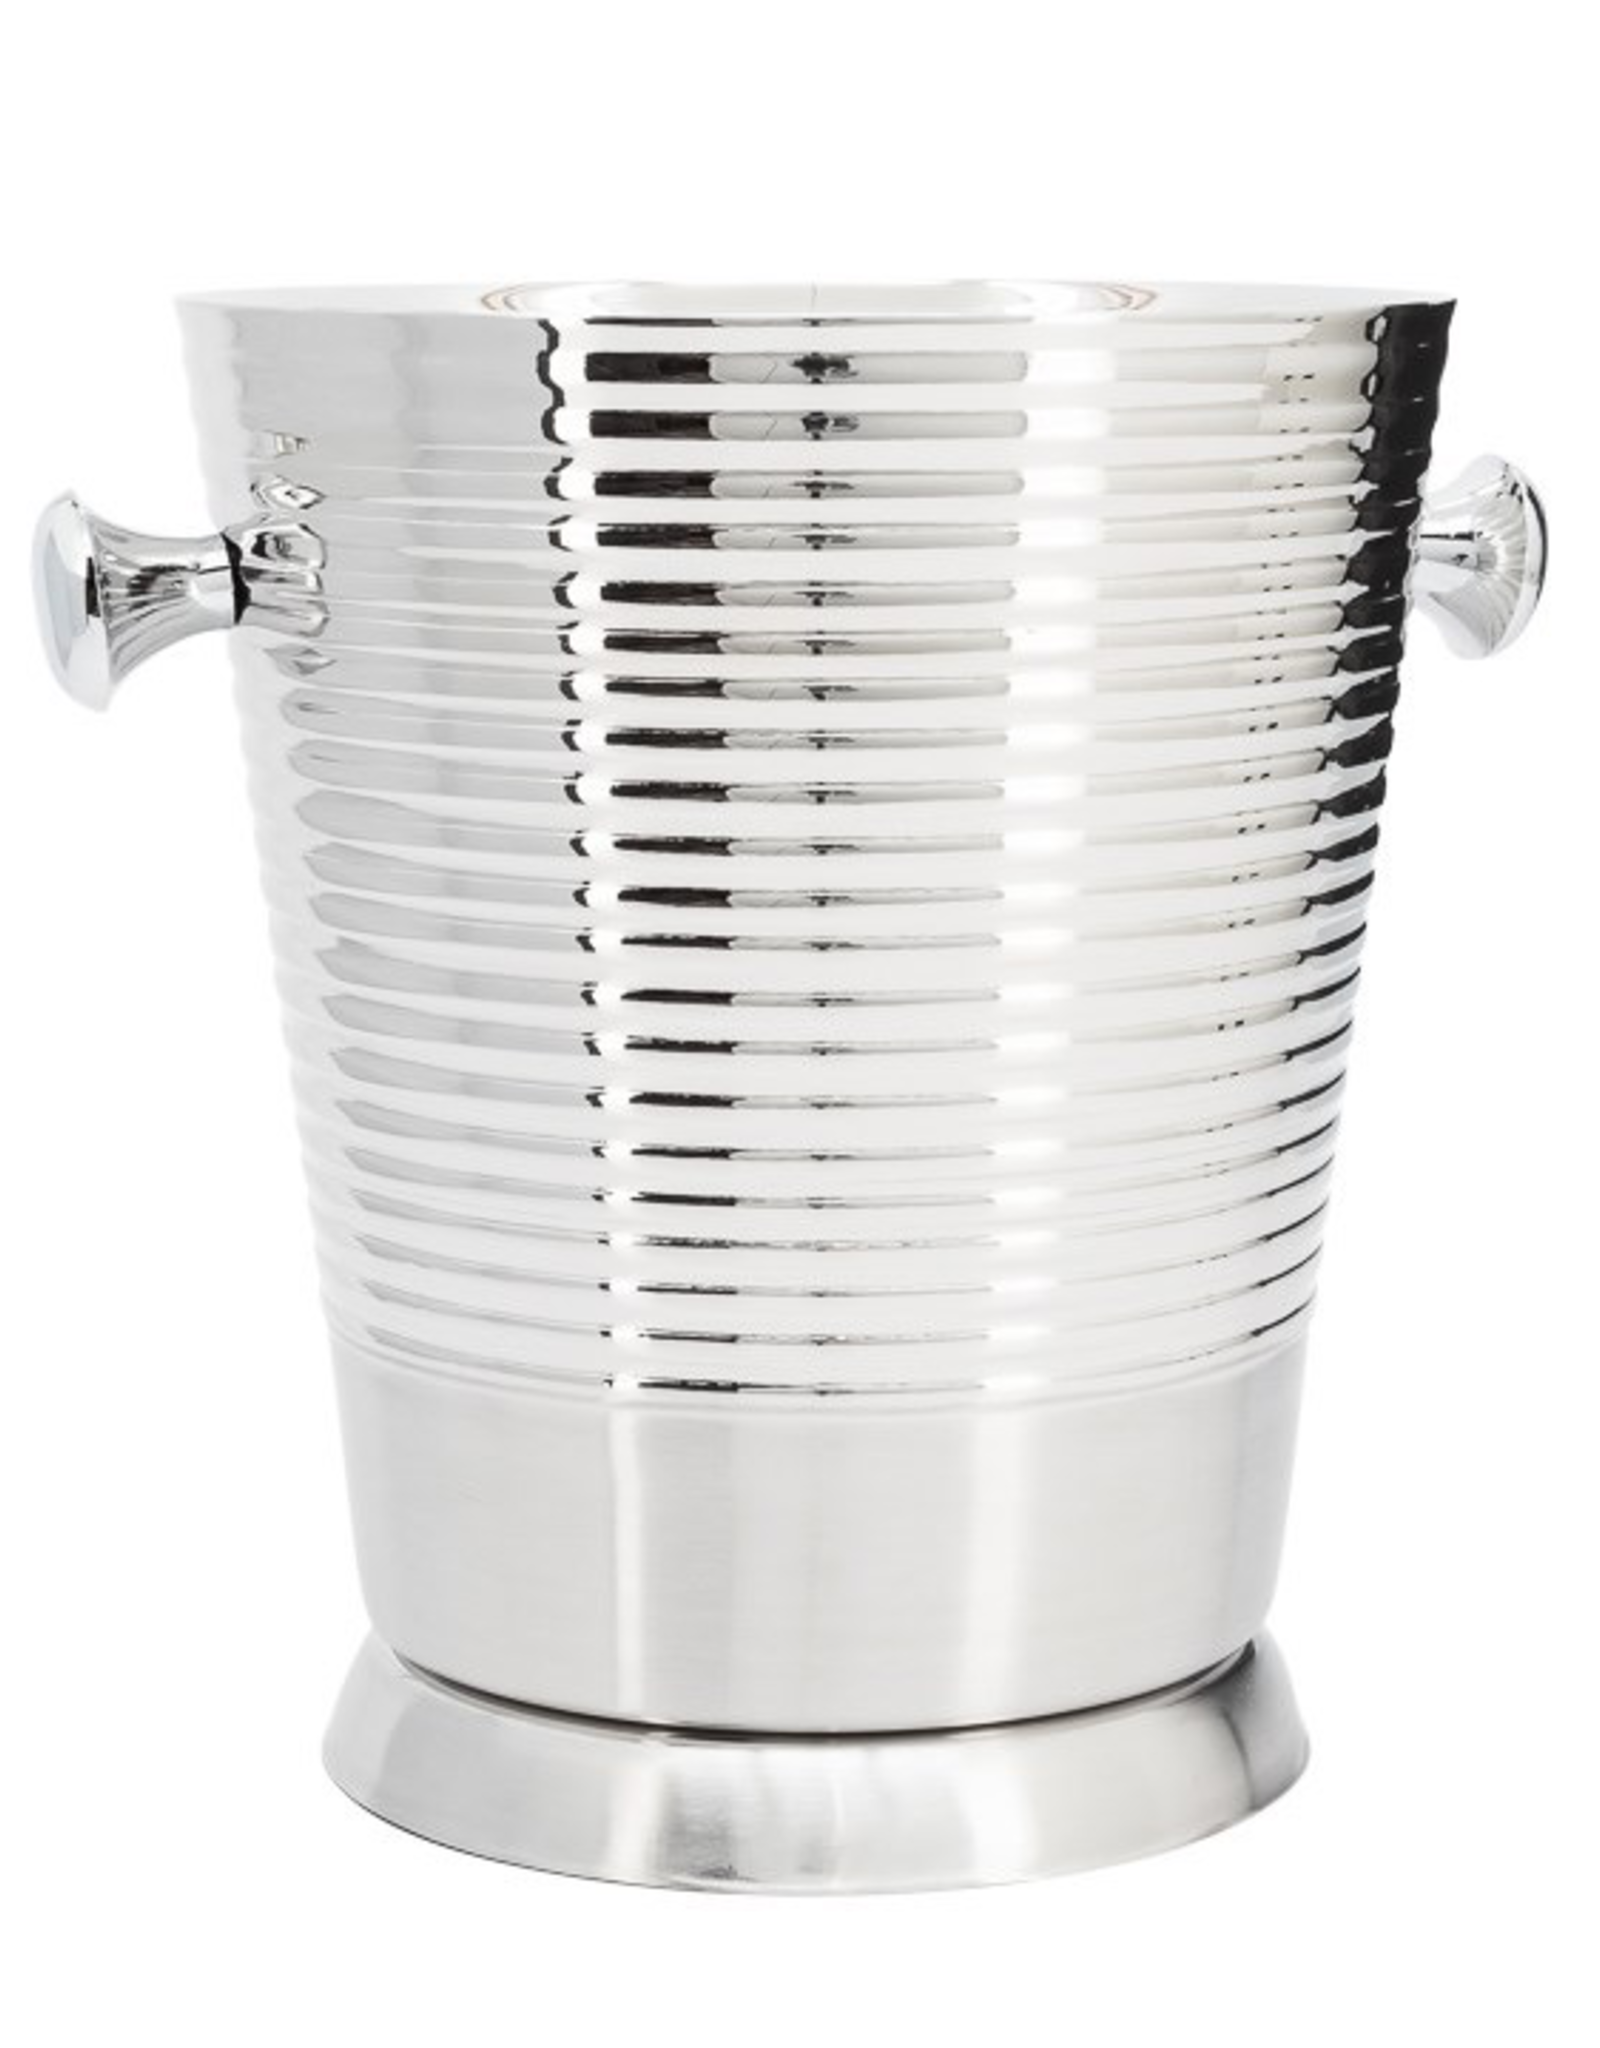 Axis Champagne Bucket